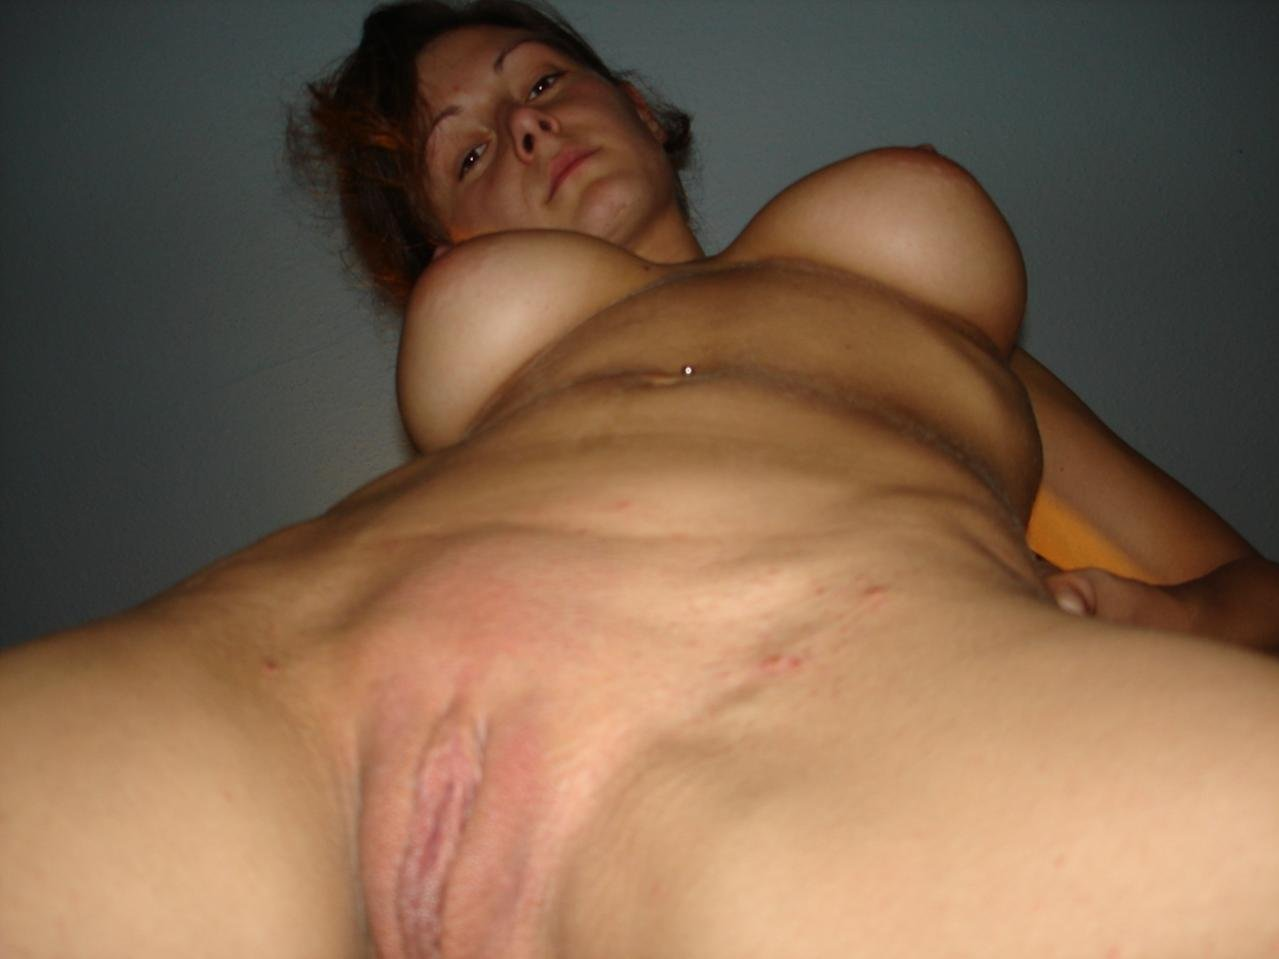 amateur girl masturbation tumblr